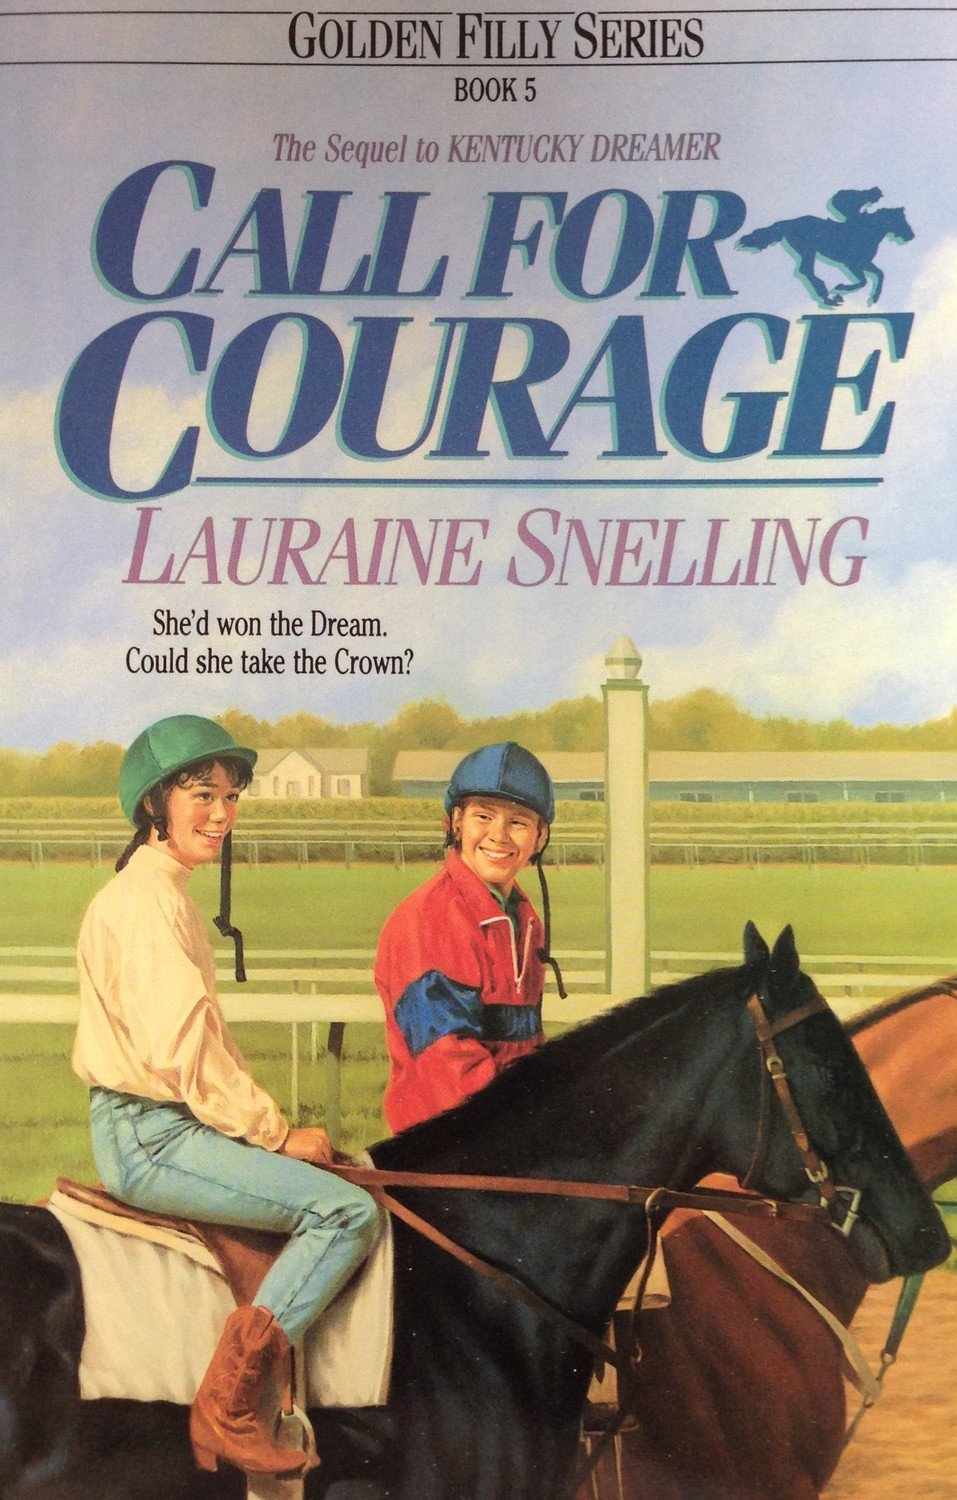 Call For Courage:  Golden Filly Series Book 5 by Lauraine Snelling